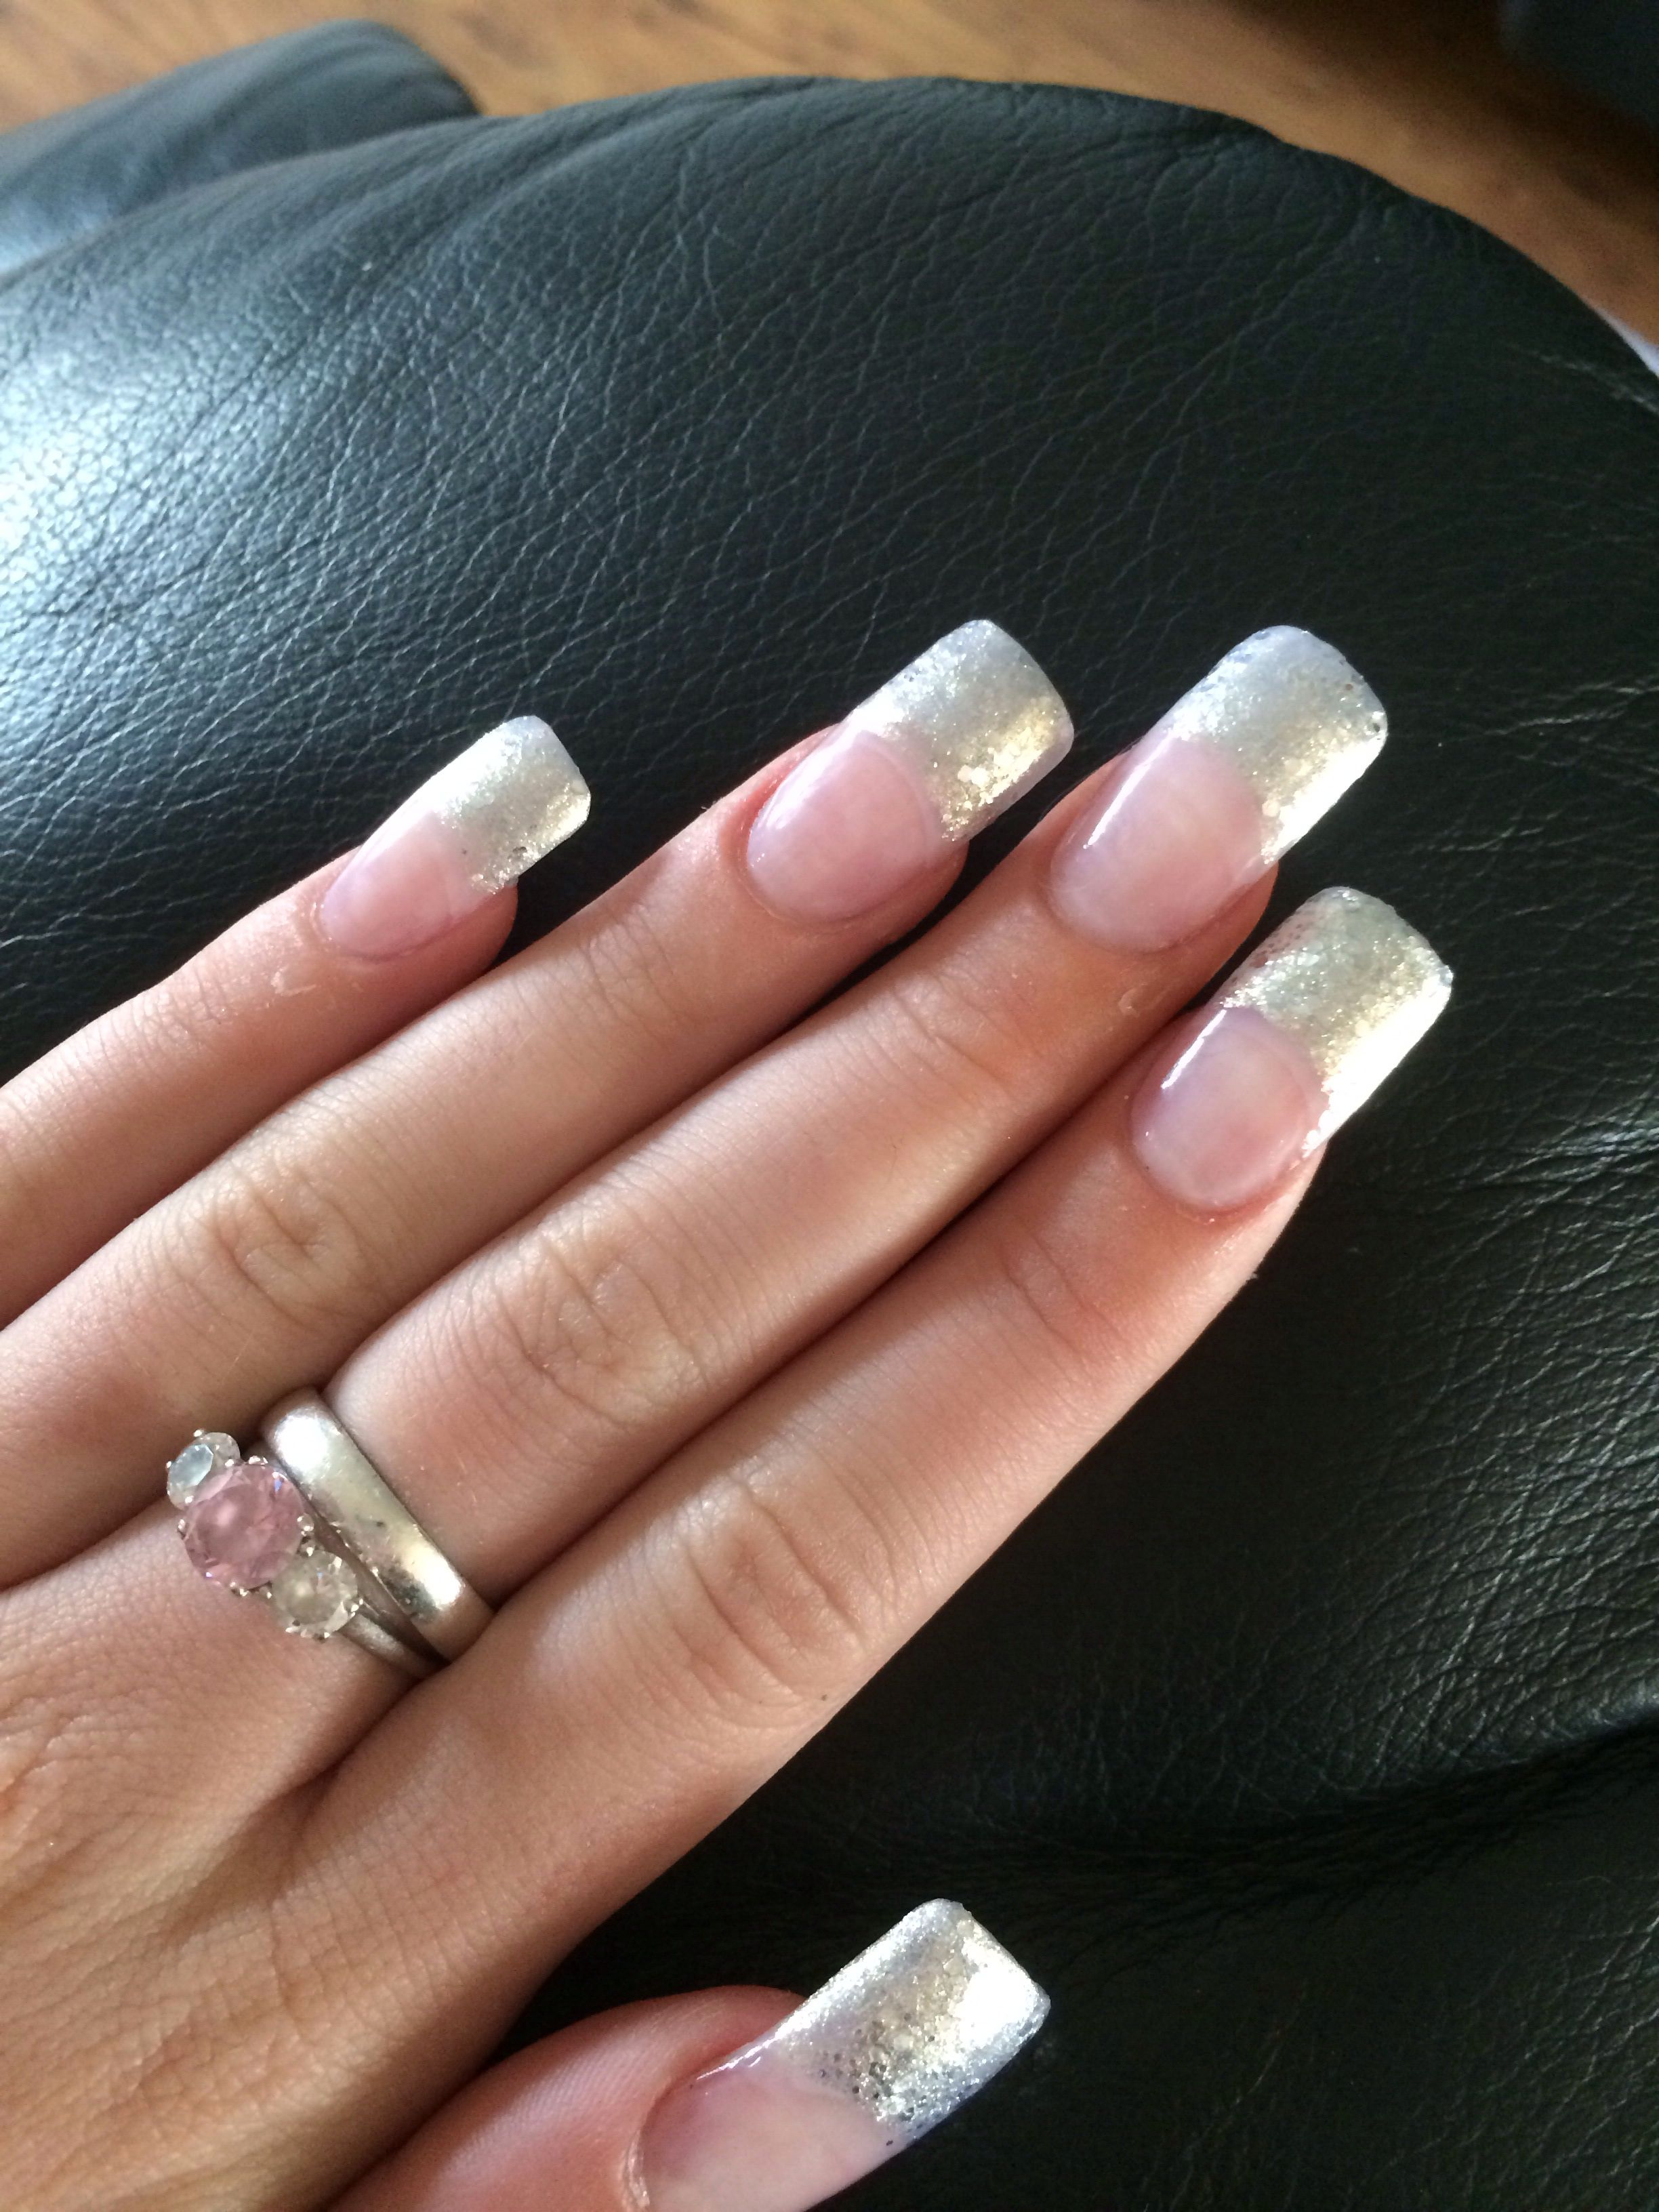 Simple White Glitter French Manicure Style Design Nails Acrylic Extensions Nail Designs Acrylic Nail Designs Glitter French Manicure